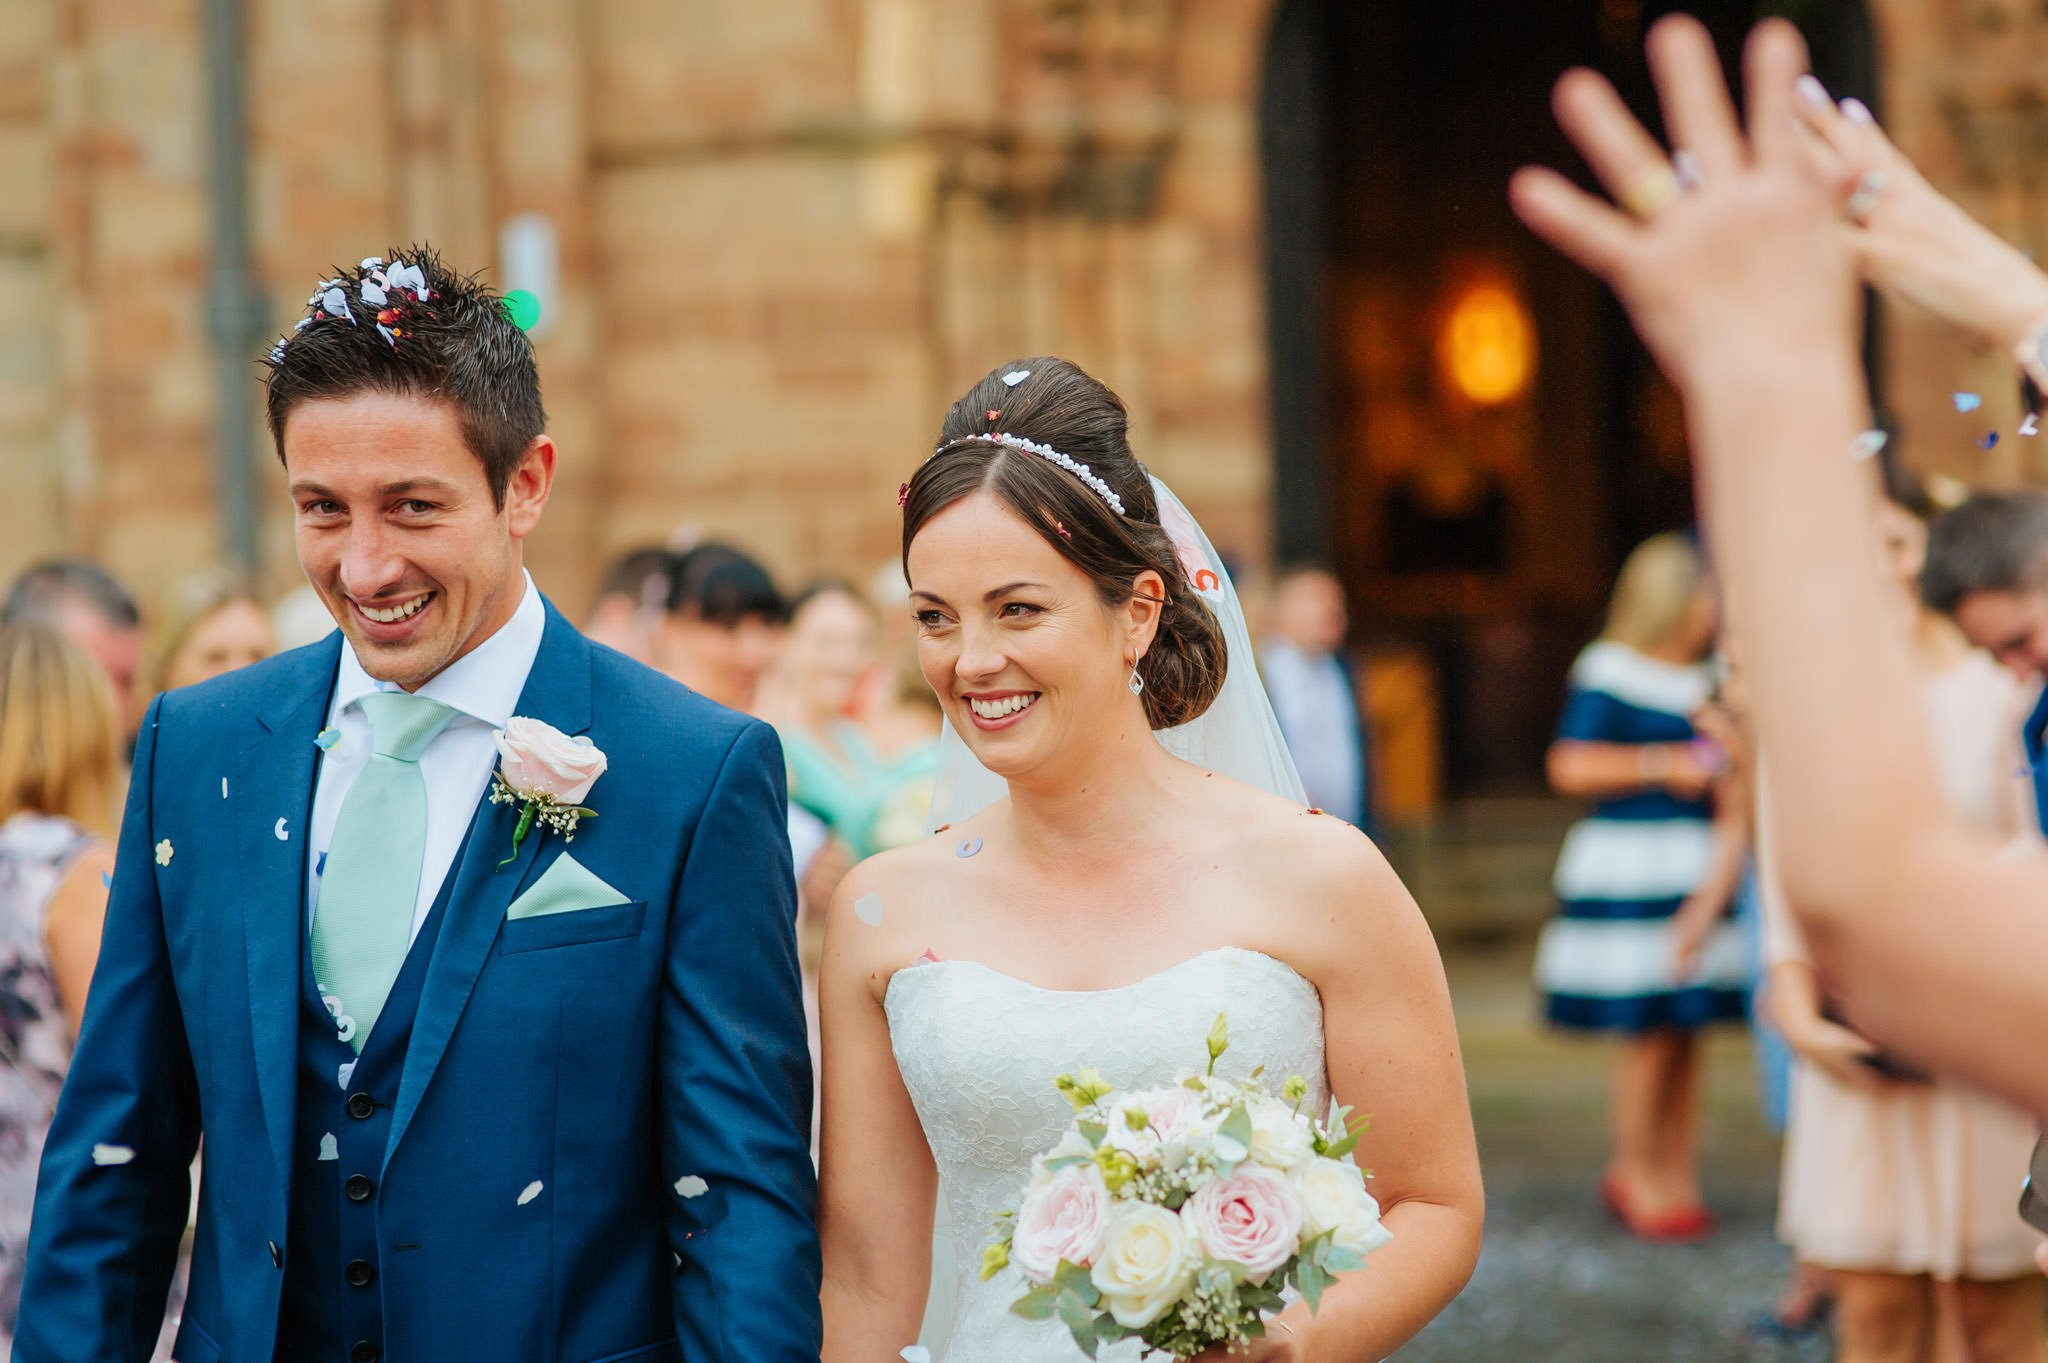 eastnor castle wedding pictures 42 - Eastnor Castle wedding photographer Herefordshire, West Midlands - Sarah + Dean